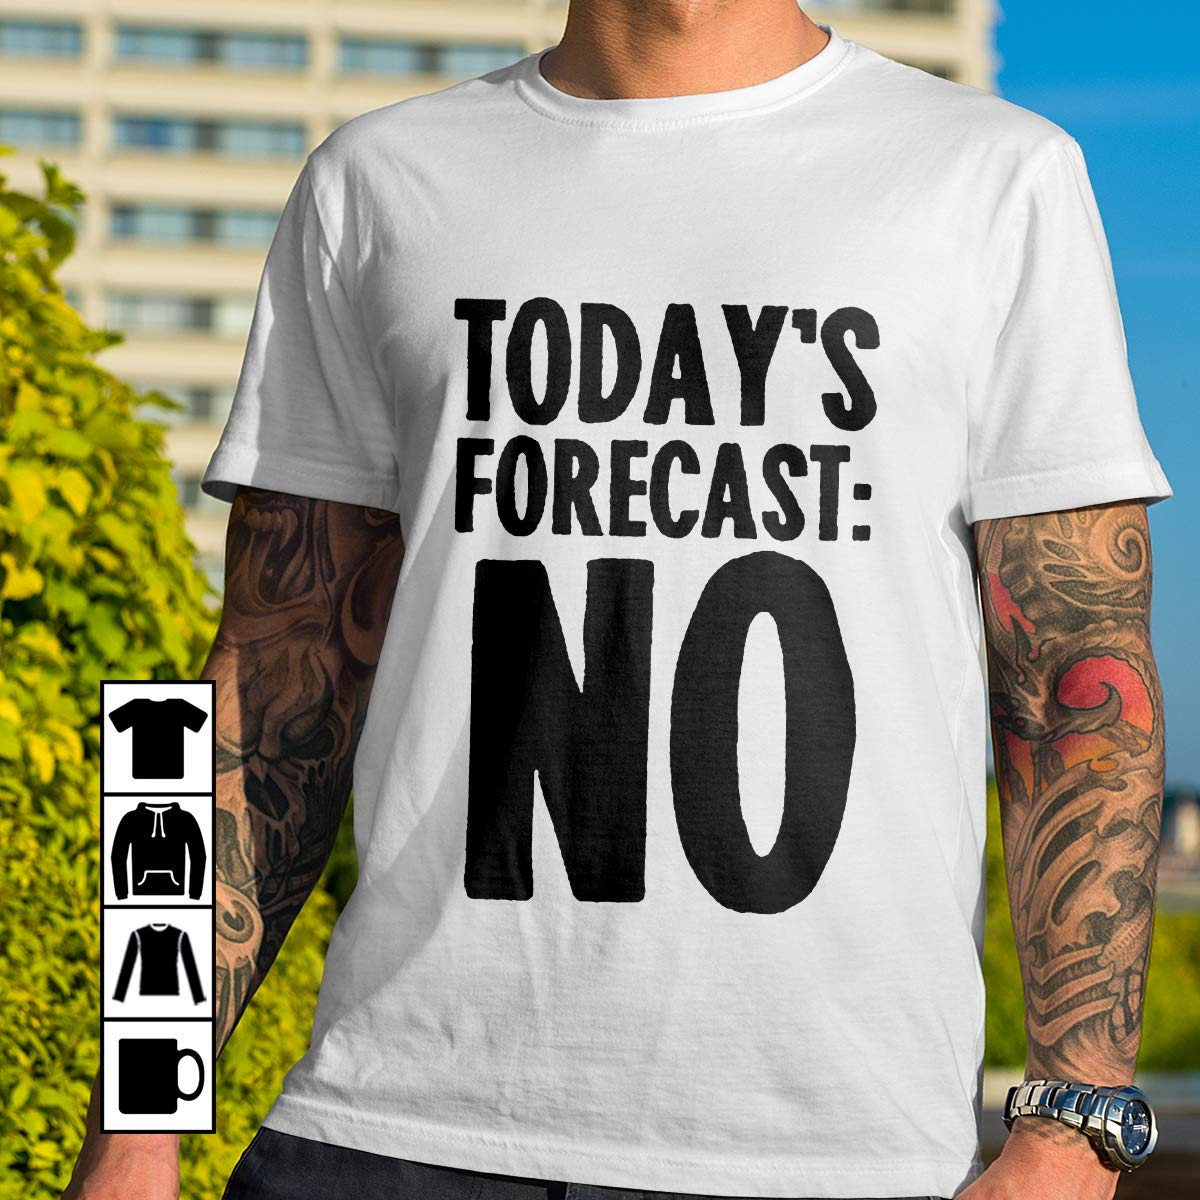 Lazy Funny TODAY'S FORECAST NO Unisex T Shirt Long Sleeve Sweatshirt Hoodie for You